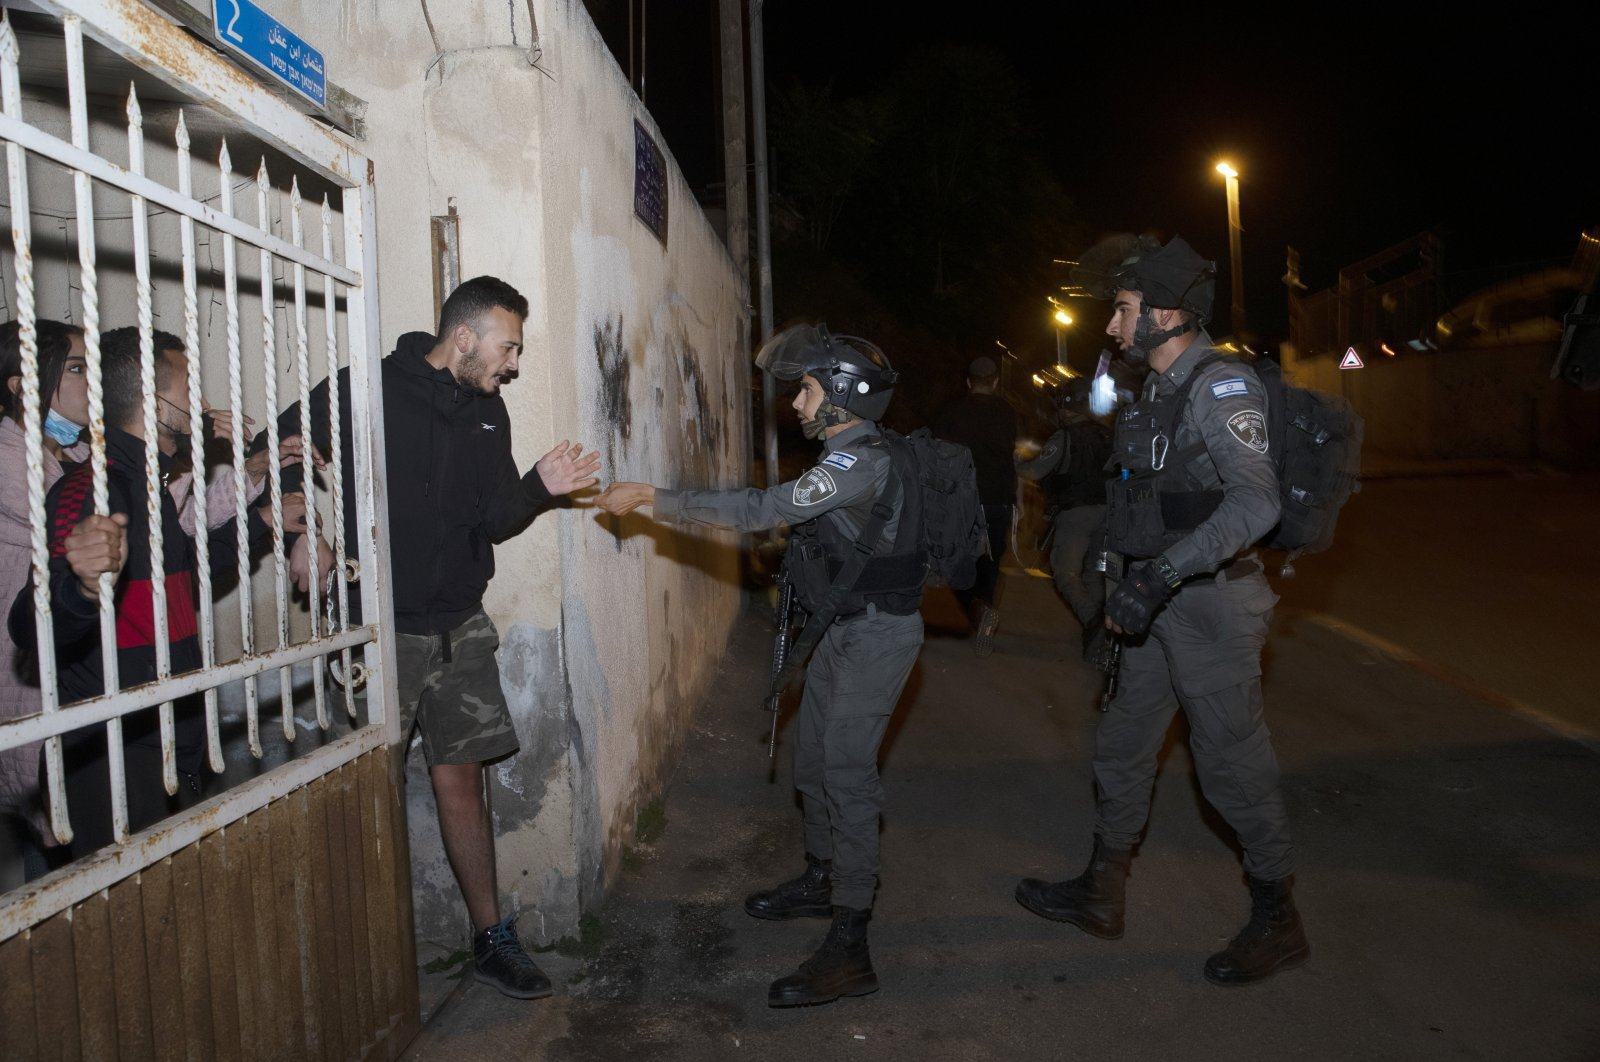 Israeli border police confront residents at their home in the Sheikh Jarrah neighborhood of East Jerusalem, where several Palestinian families face imminent eviction, Palestine, May 12, 2021. (AP Photo)